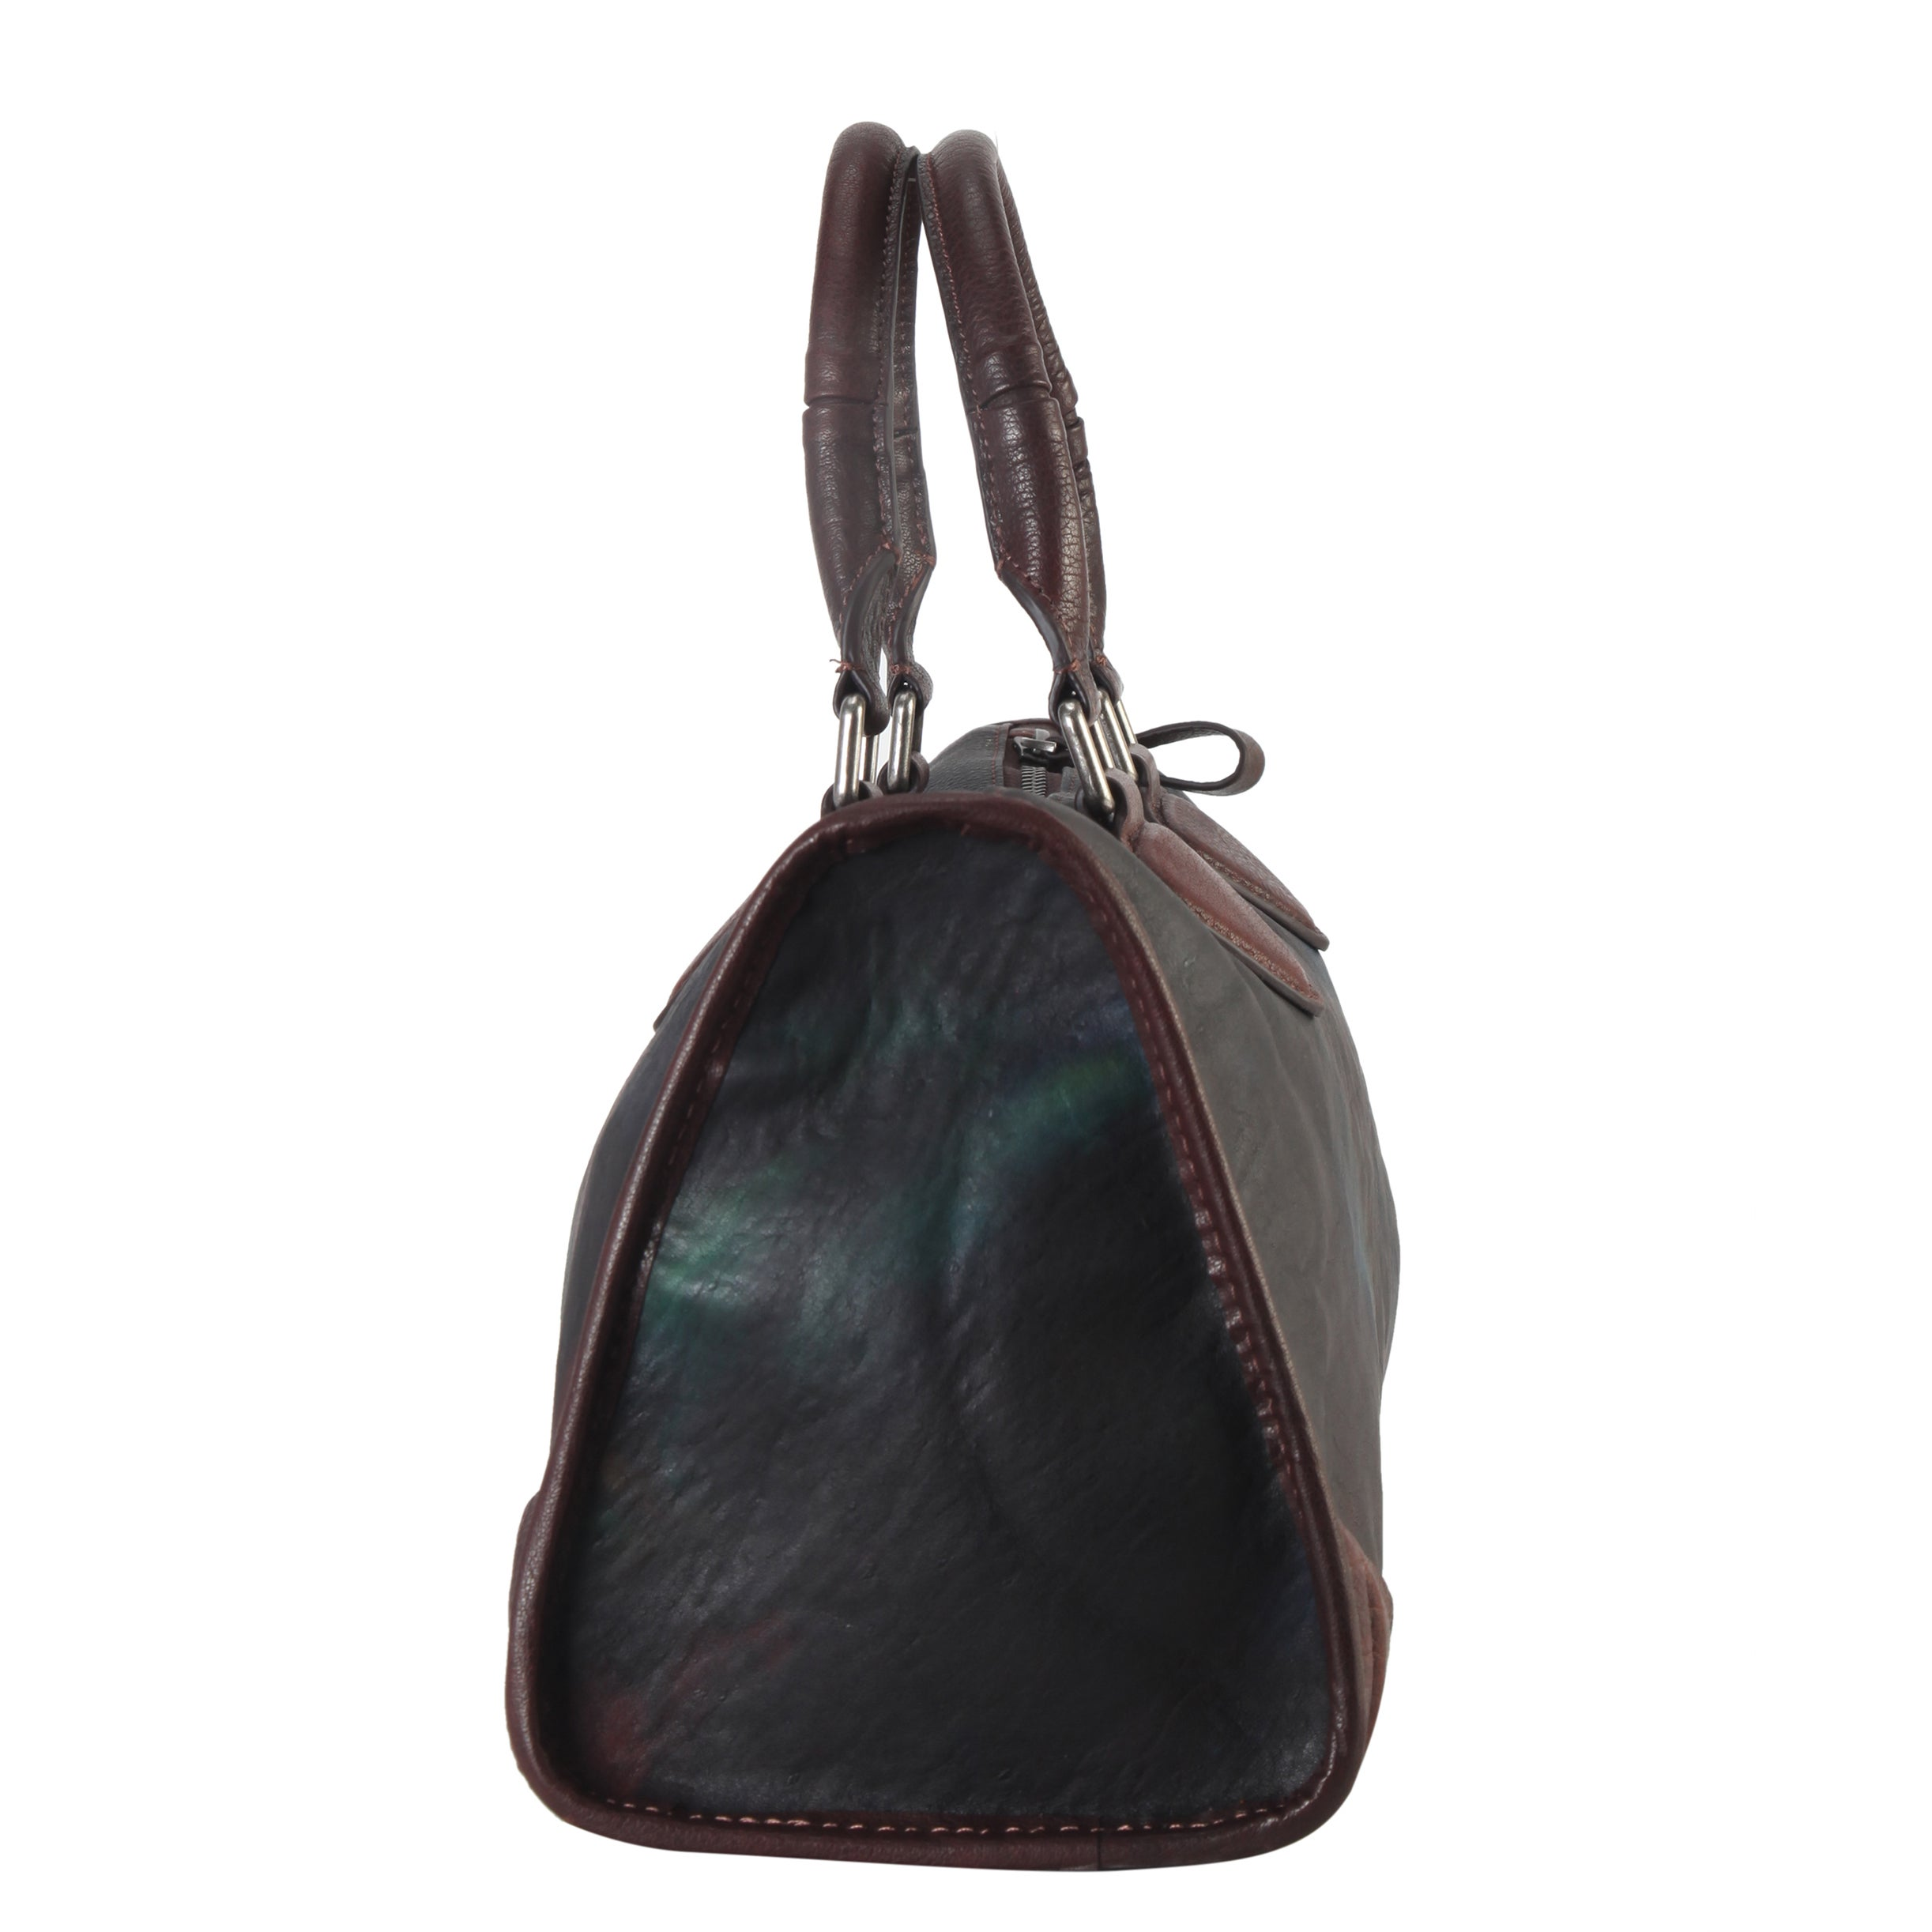 cc07115ae2c0 Diophy Distressed-style Genuine Leather Large Top-handle Tote Bag